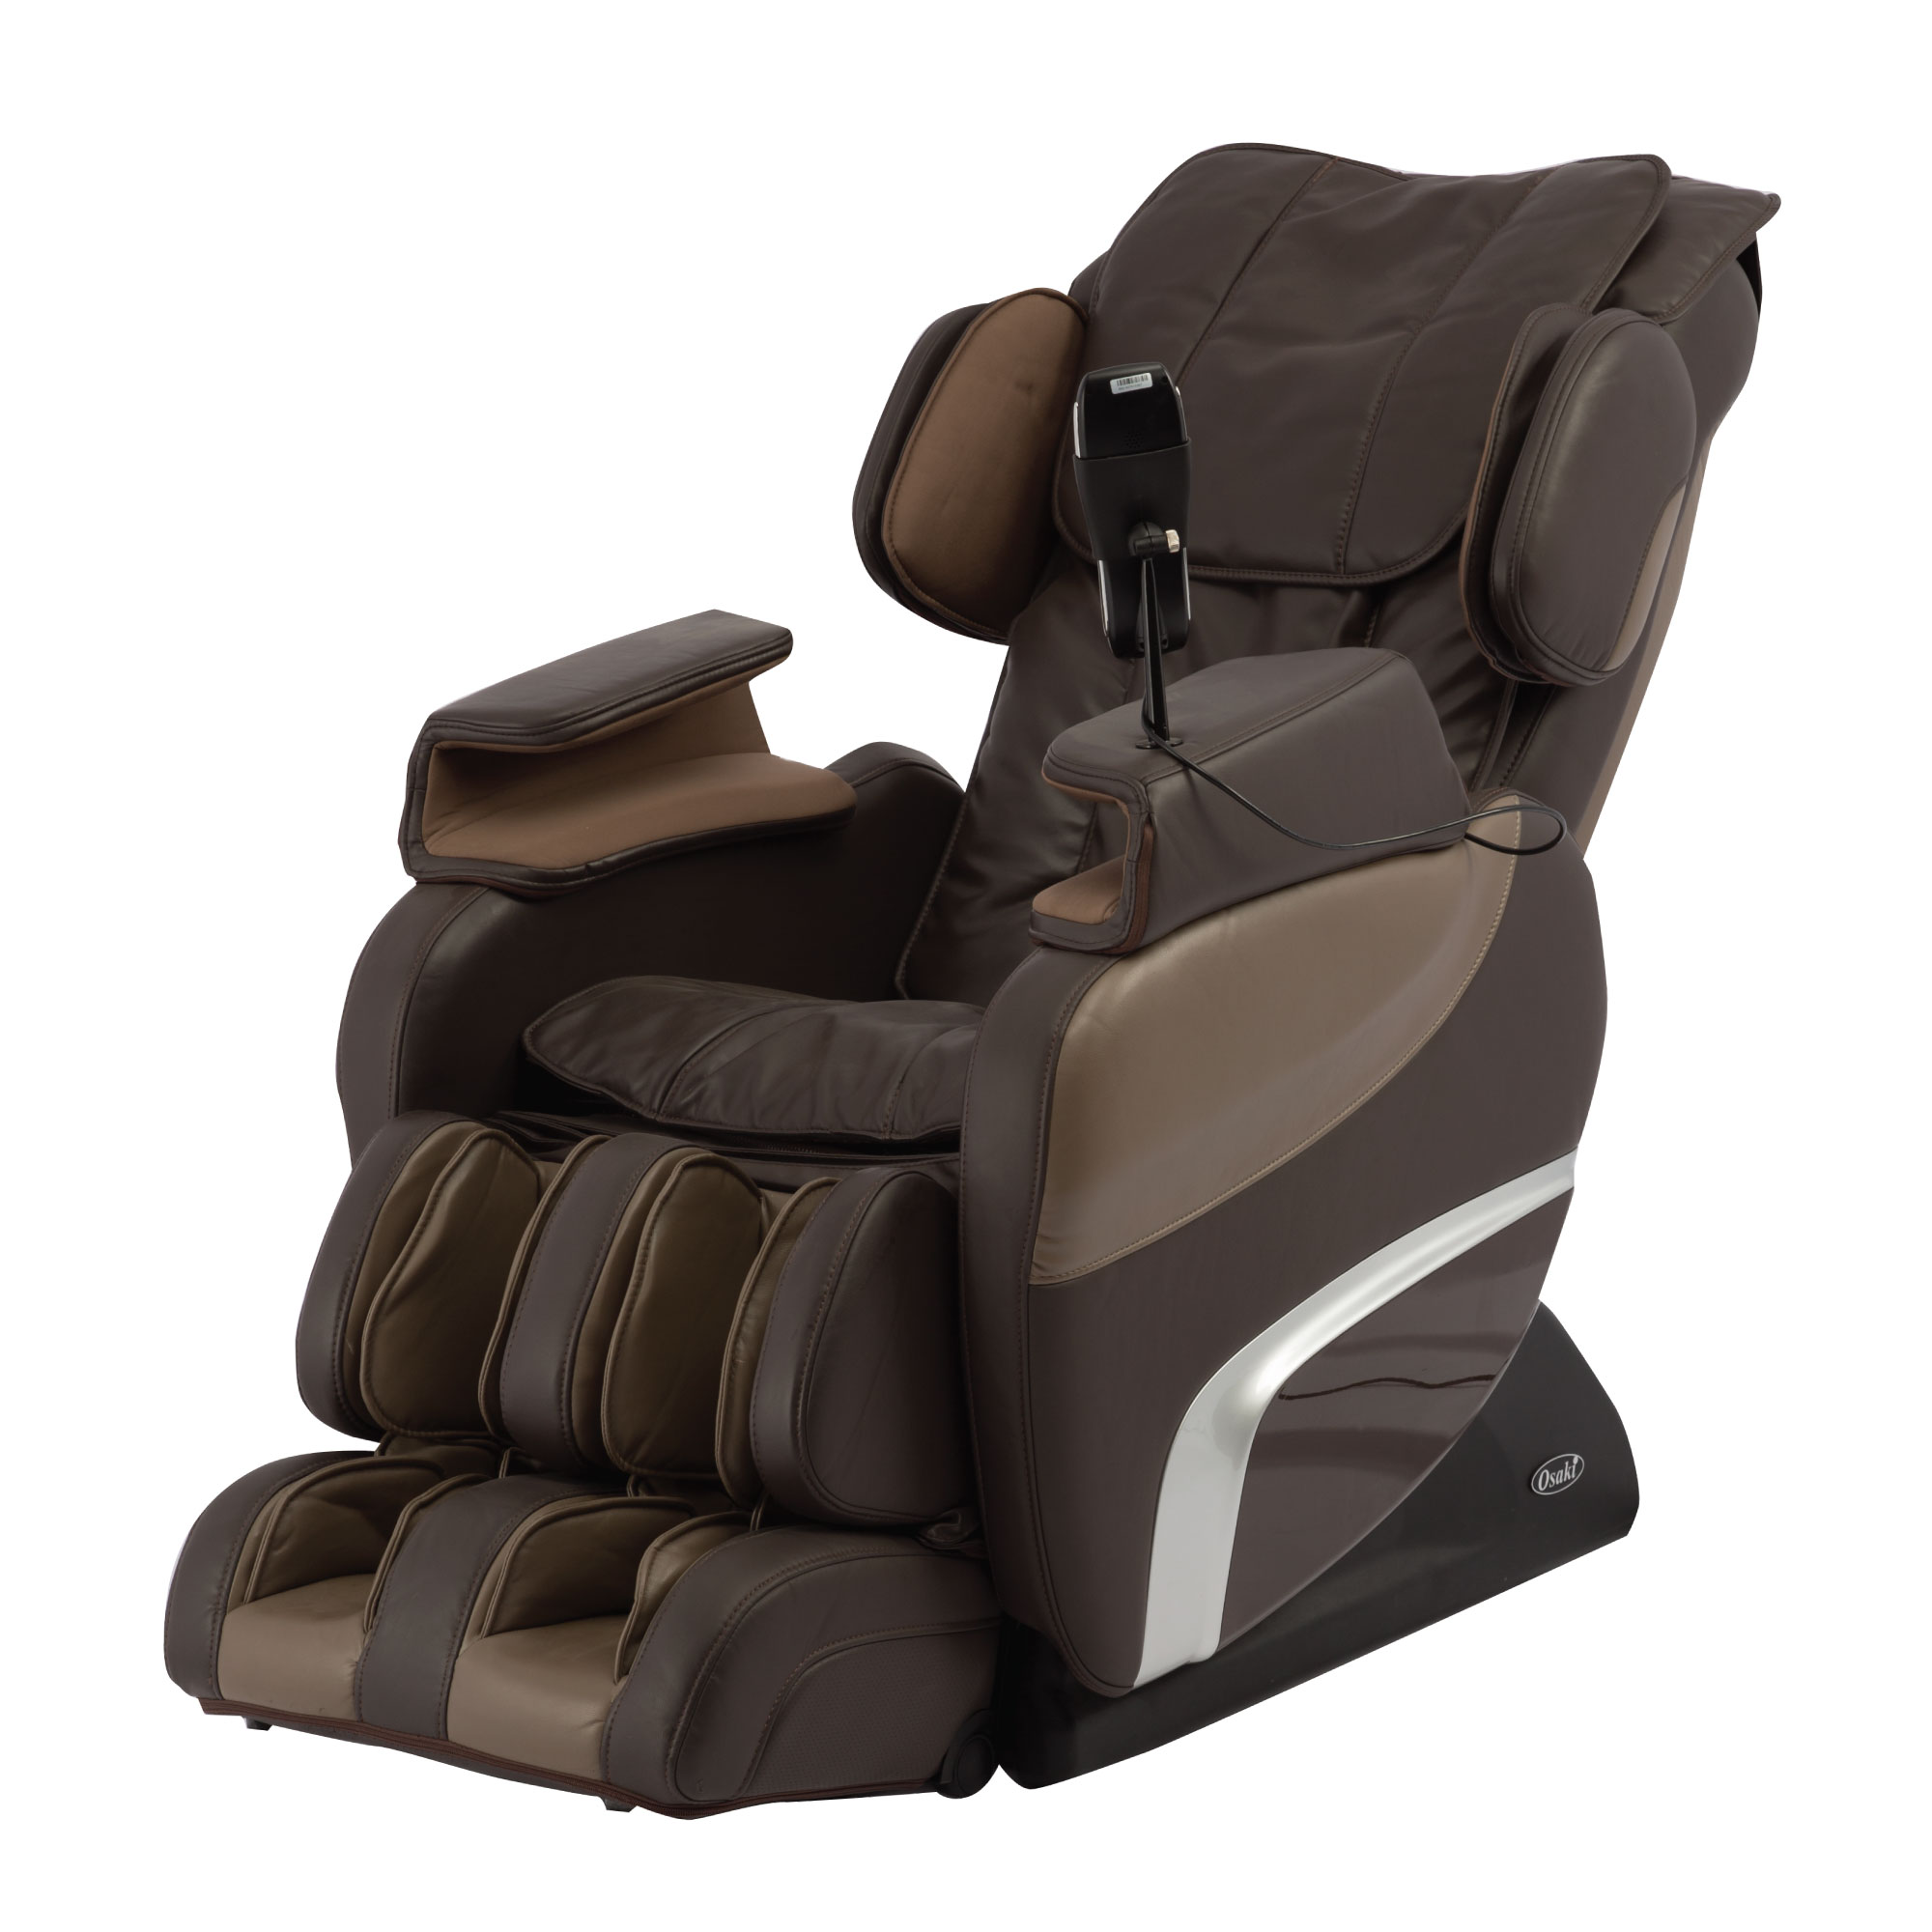 used vending massage chairs for sale white desk chair no wheels titan t1 7700r